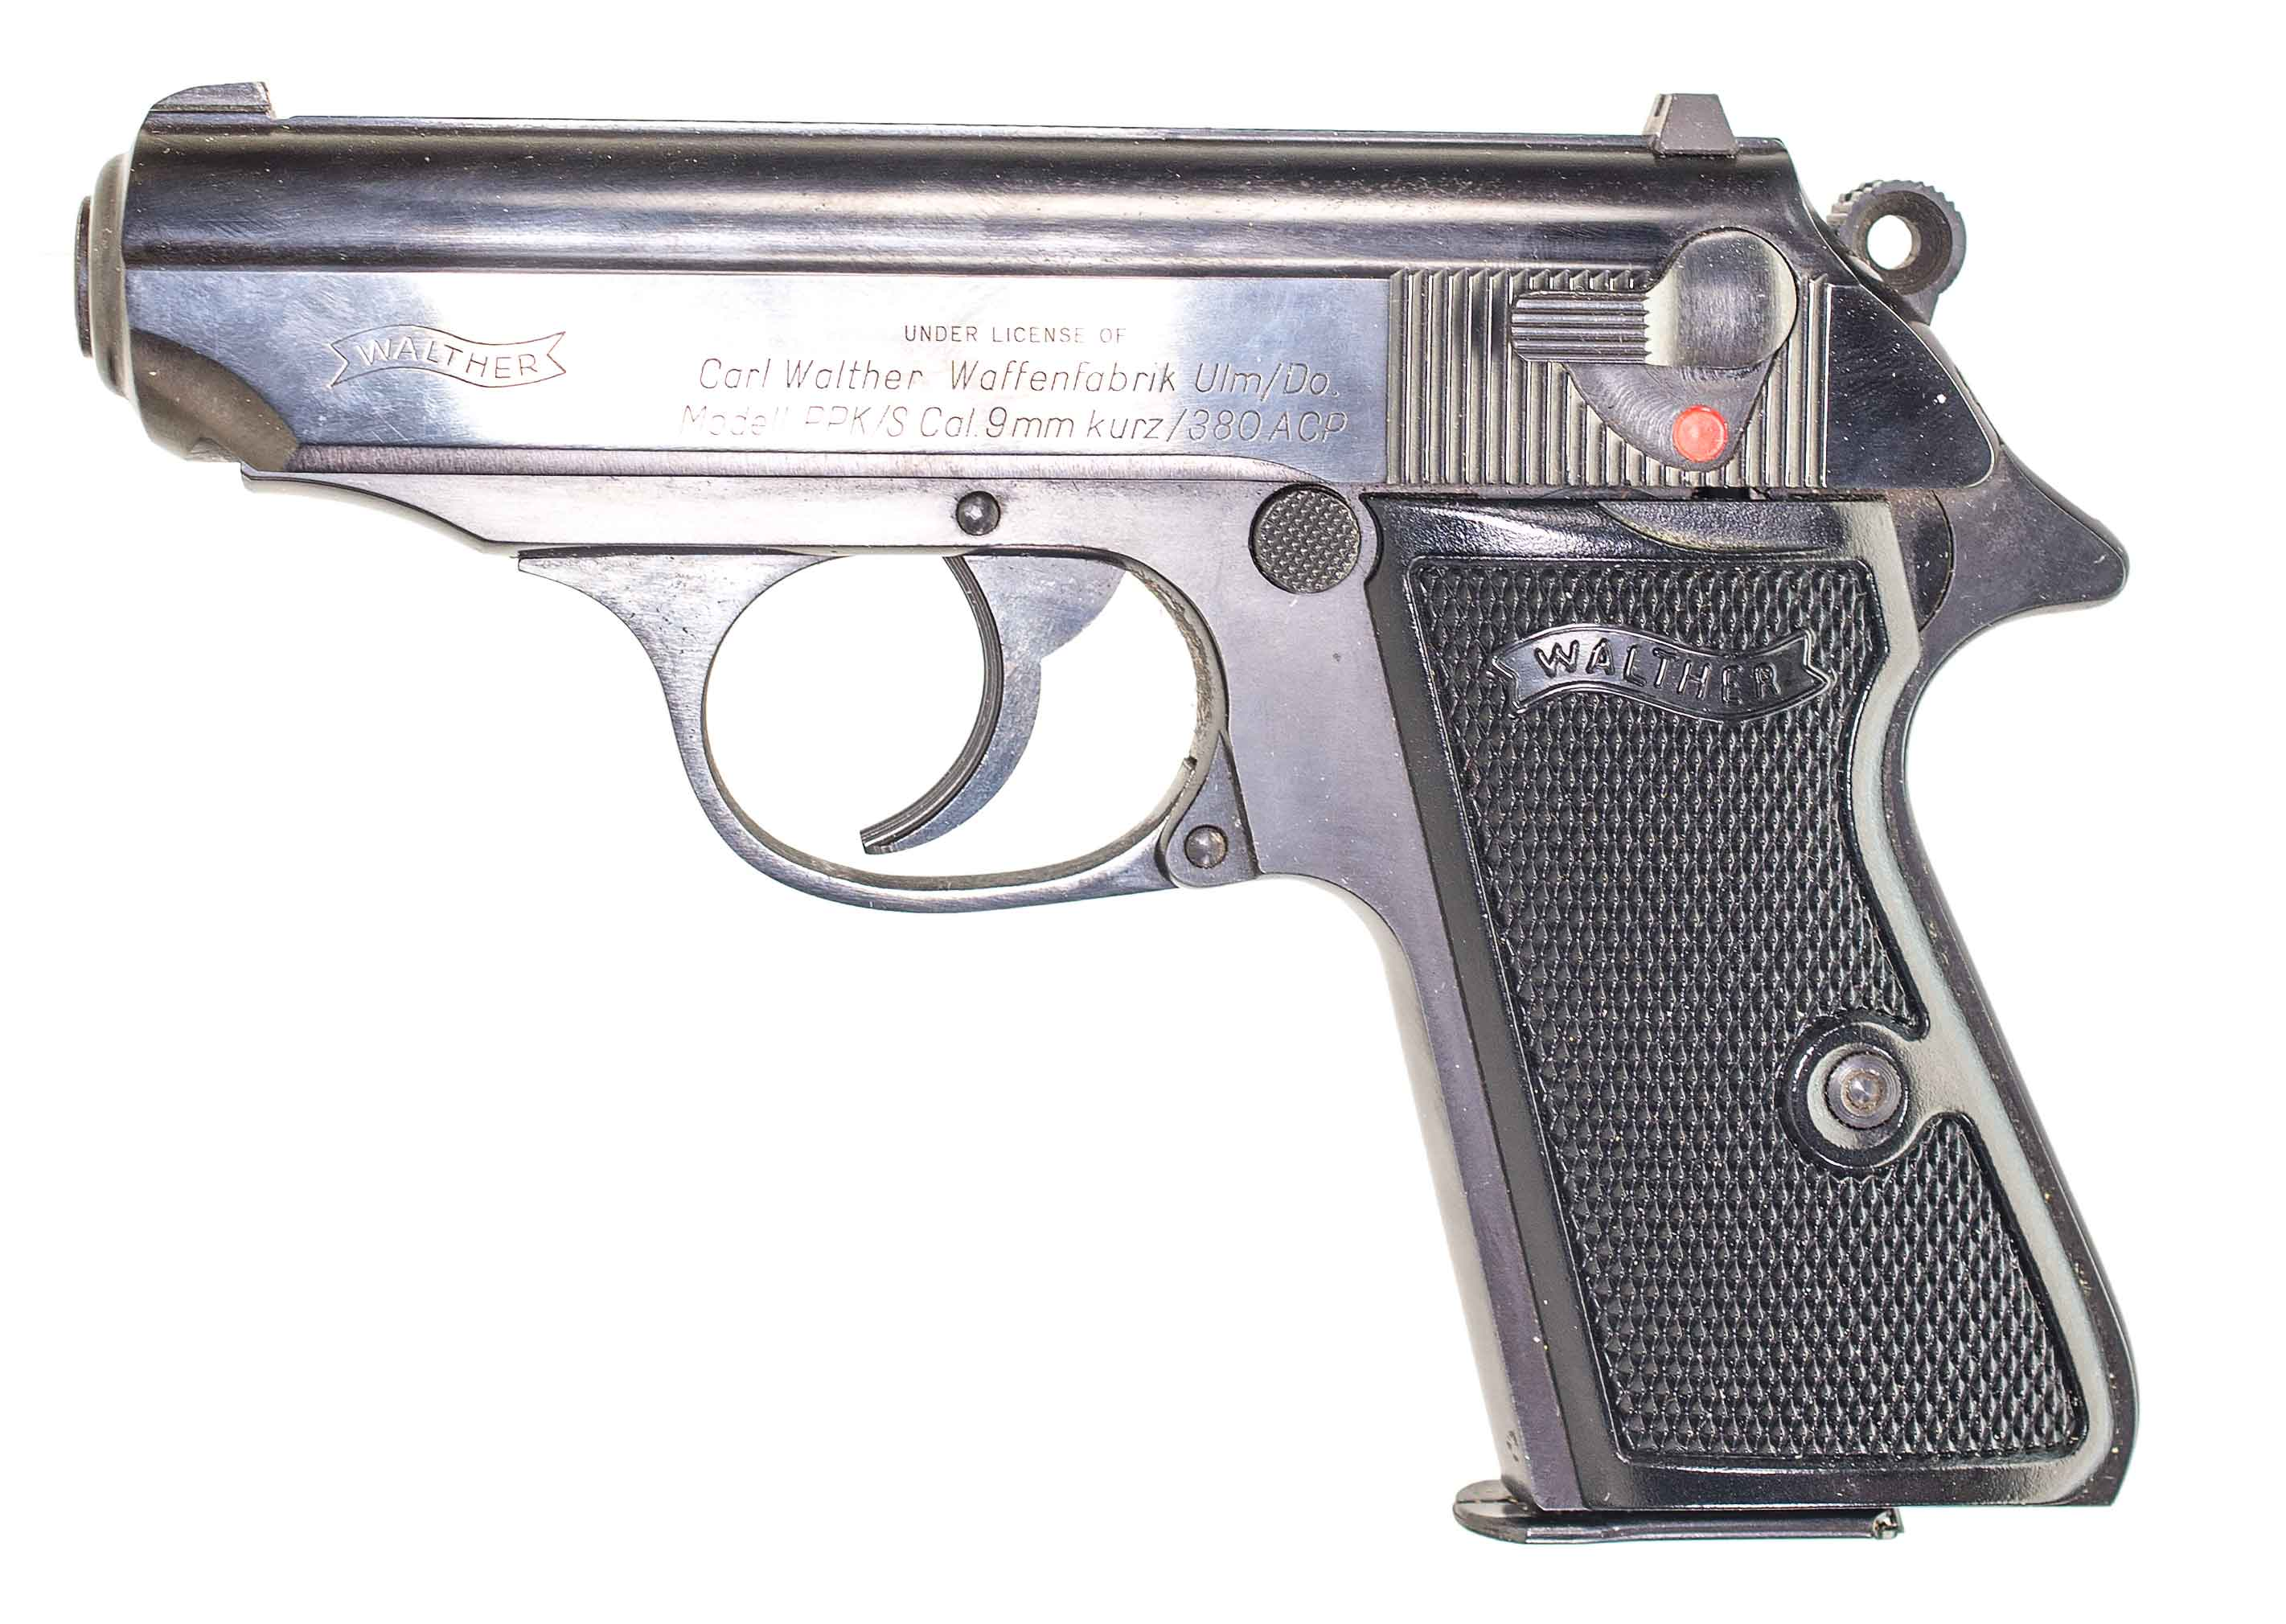 WALTHER PPK/S (Auction ID: 9121605, End Time : Aug. 30, 2017 23:00 ...